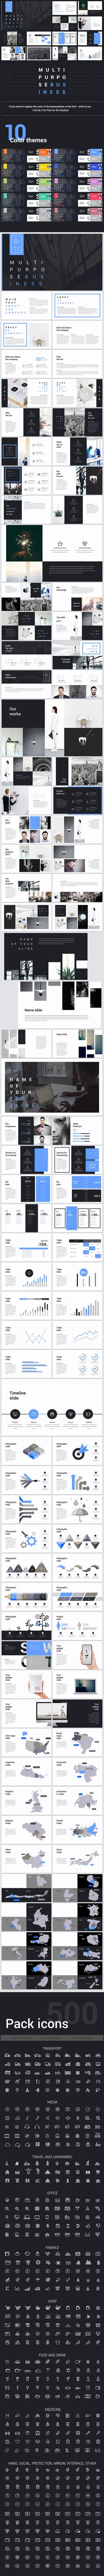 Multipurpose Business Clean #Powerpoint - Business PowerPoint Templates